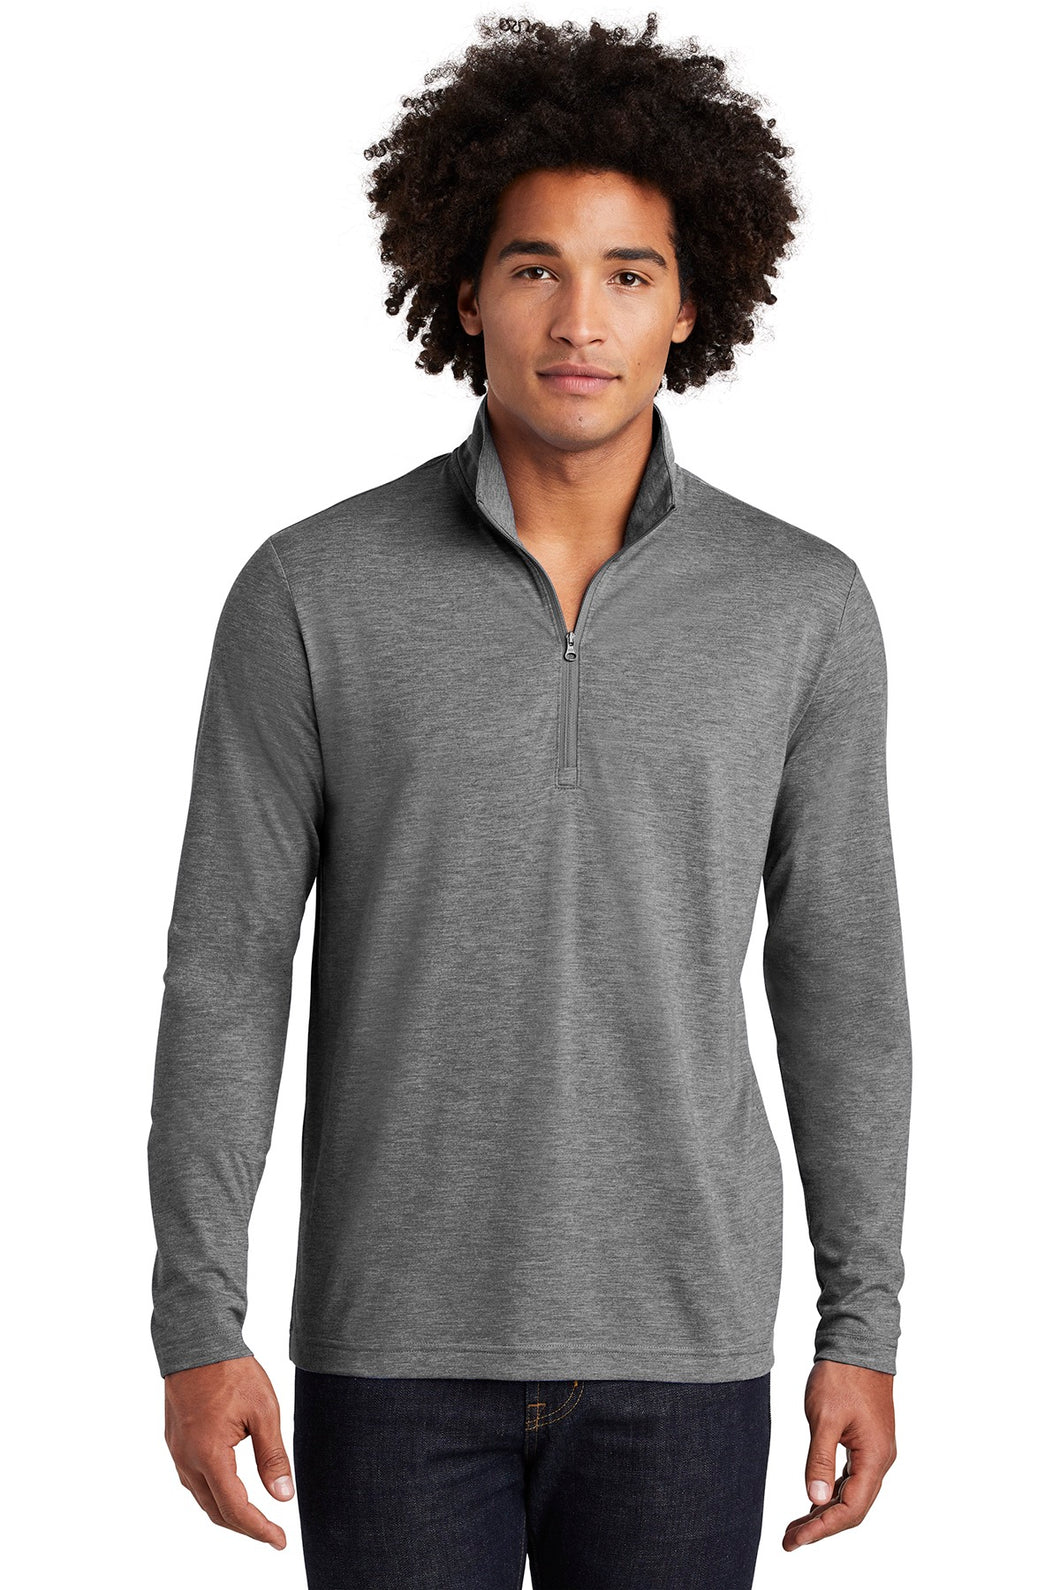 Marblehead Bank Men's Tri-Blend 1/4 Zip Pullover